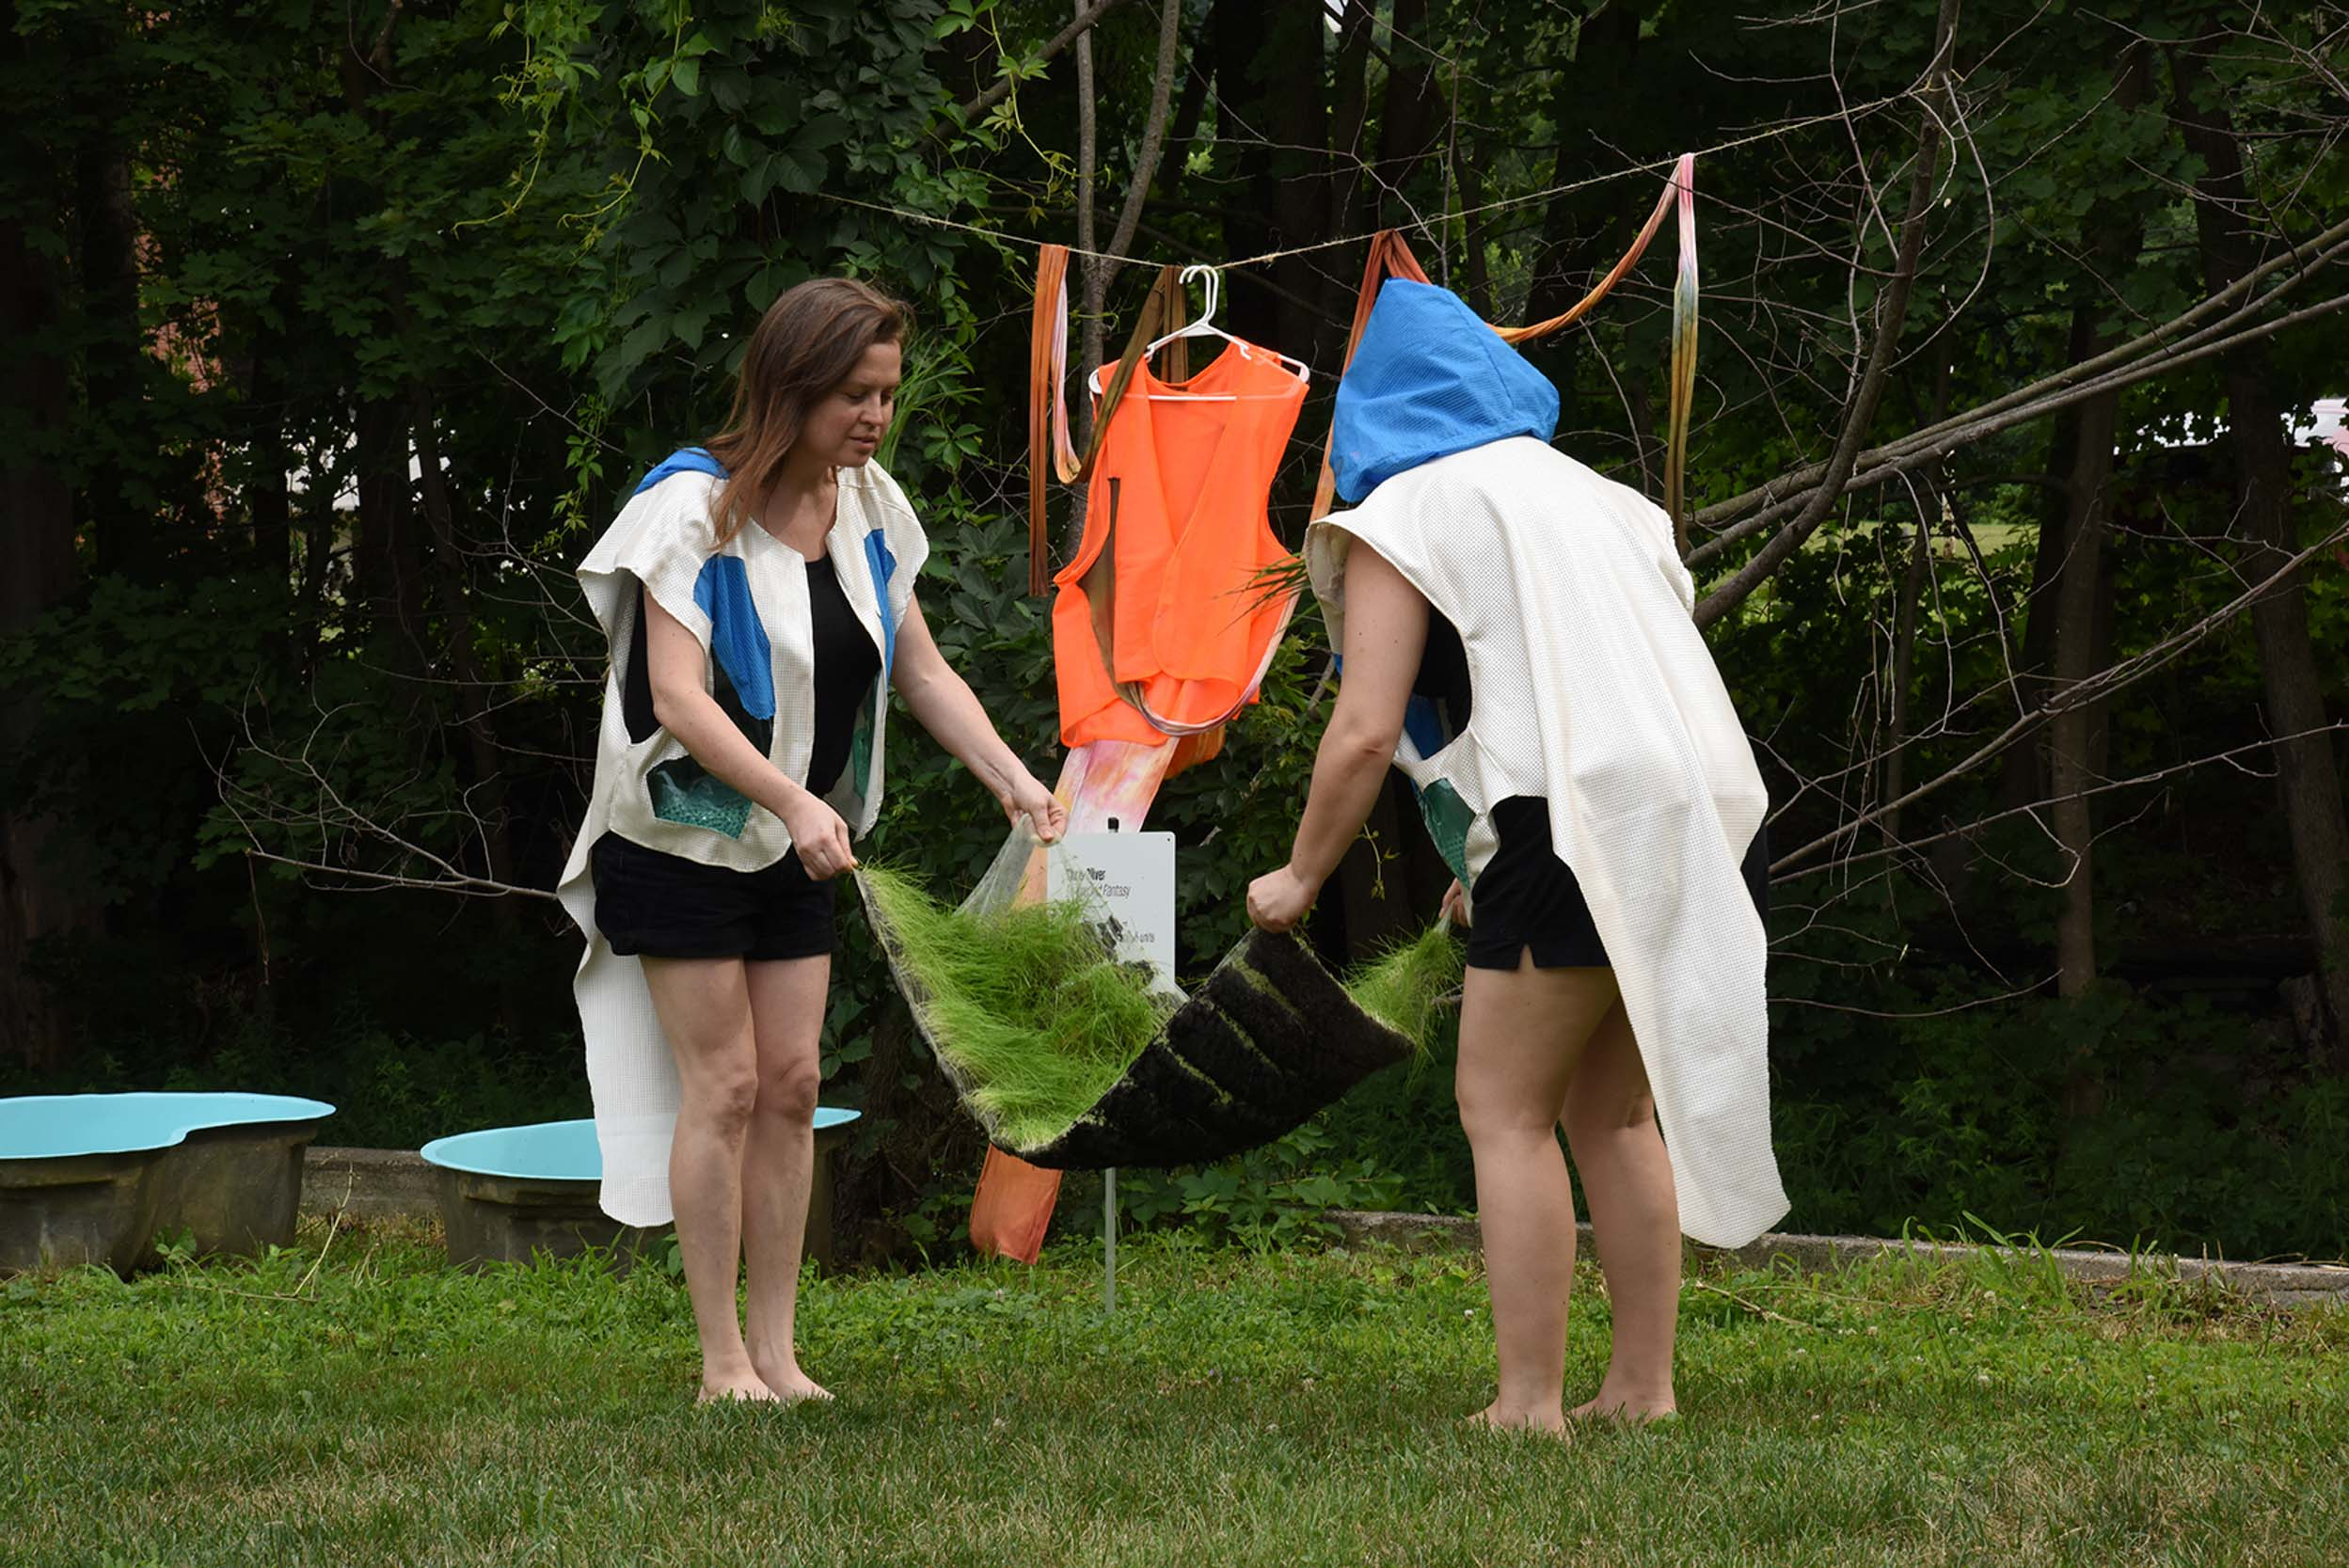 wassaic-project-artists-jean-carla-rodea-and-katy-halfin-2018-07-21-16-53-40.jpg